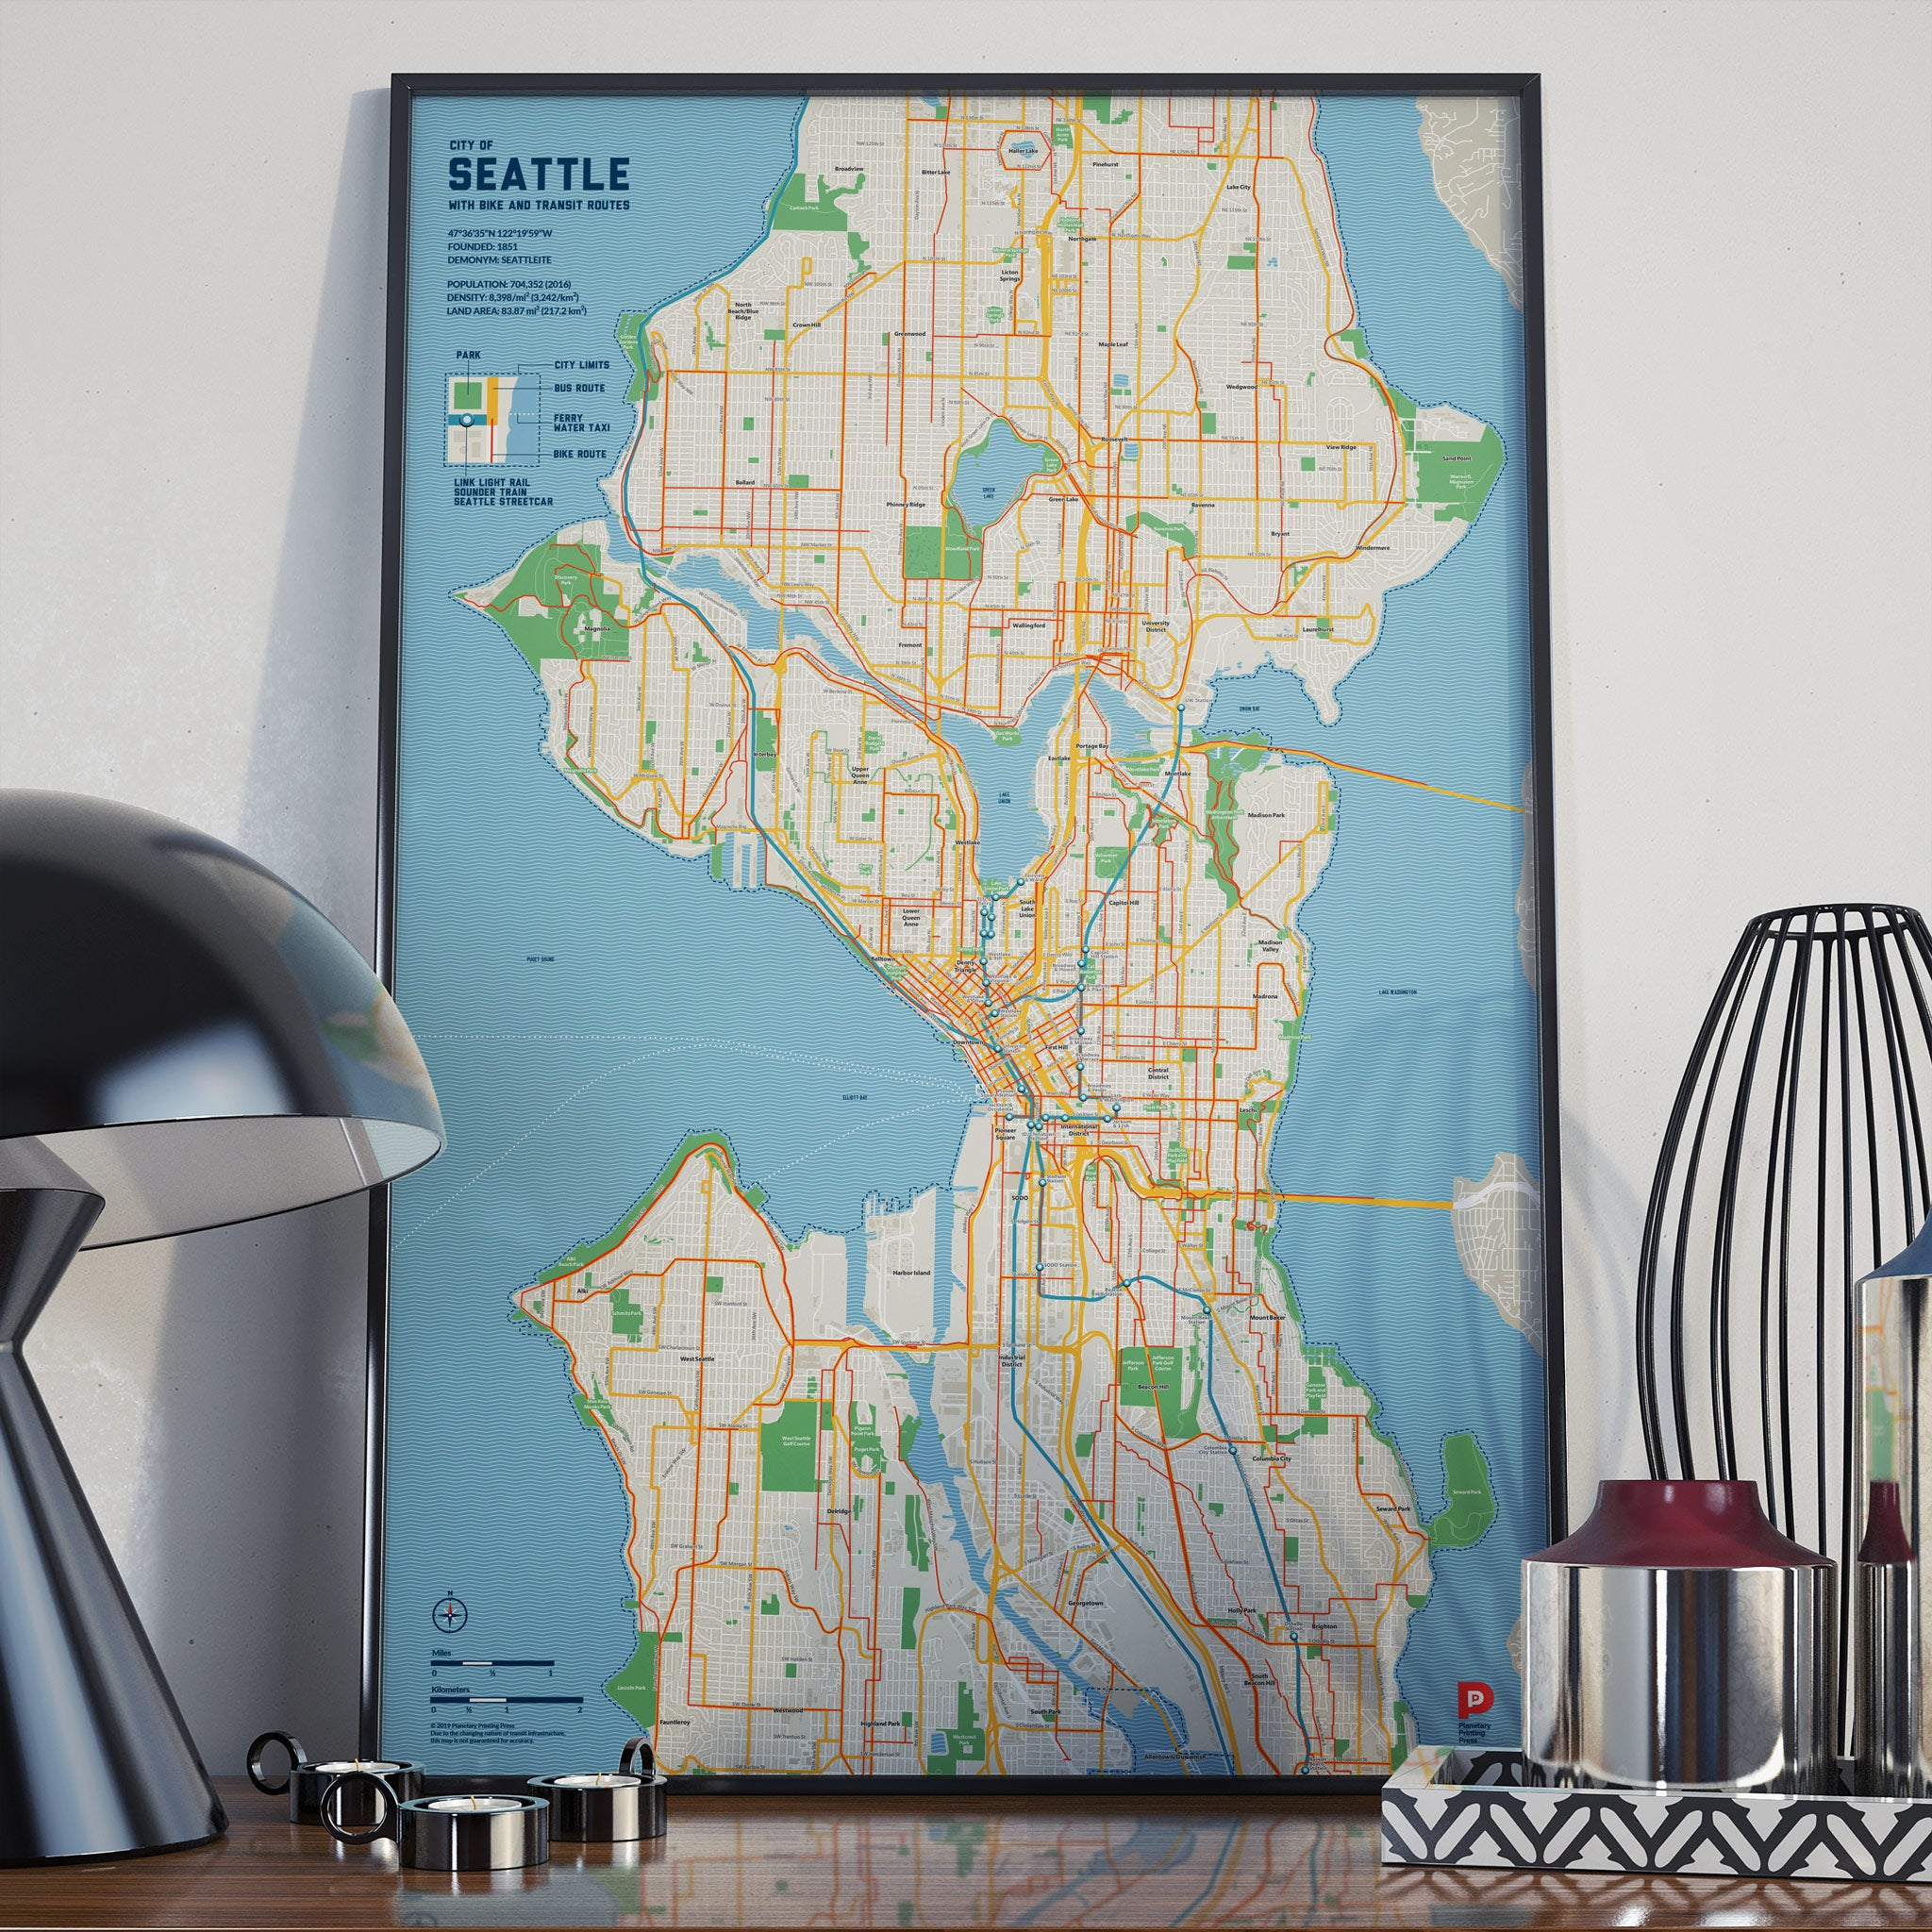 Seattle Bike & Transit Map